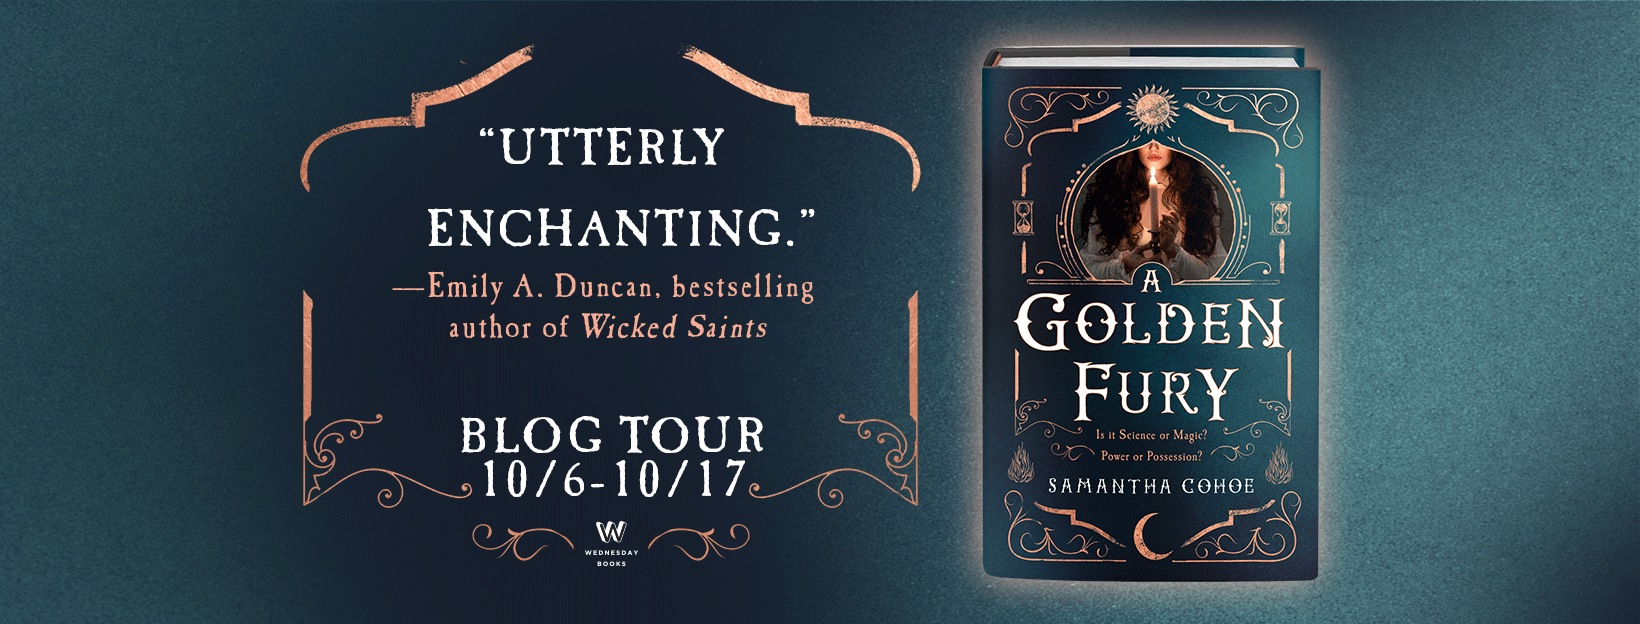 A Golden Fury_Blog Tour Banner